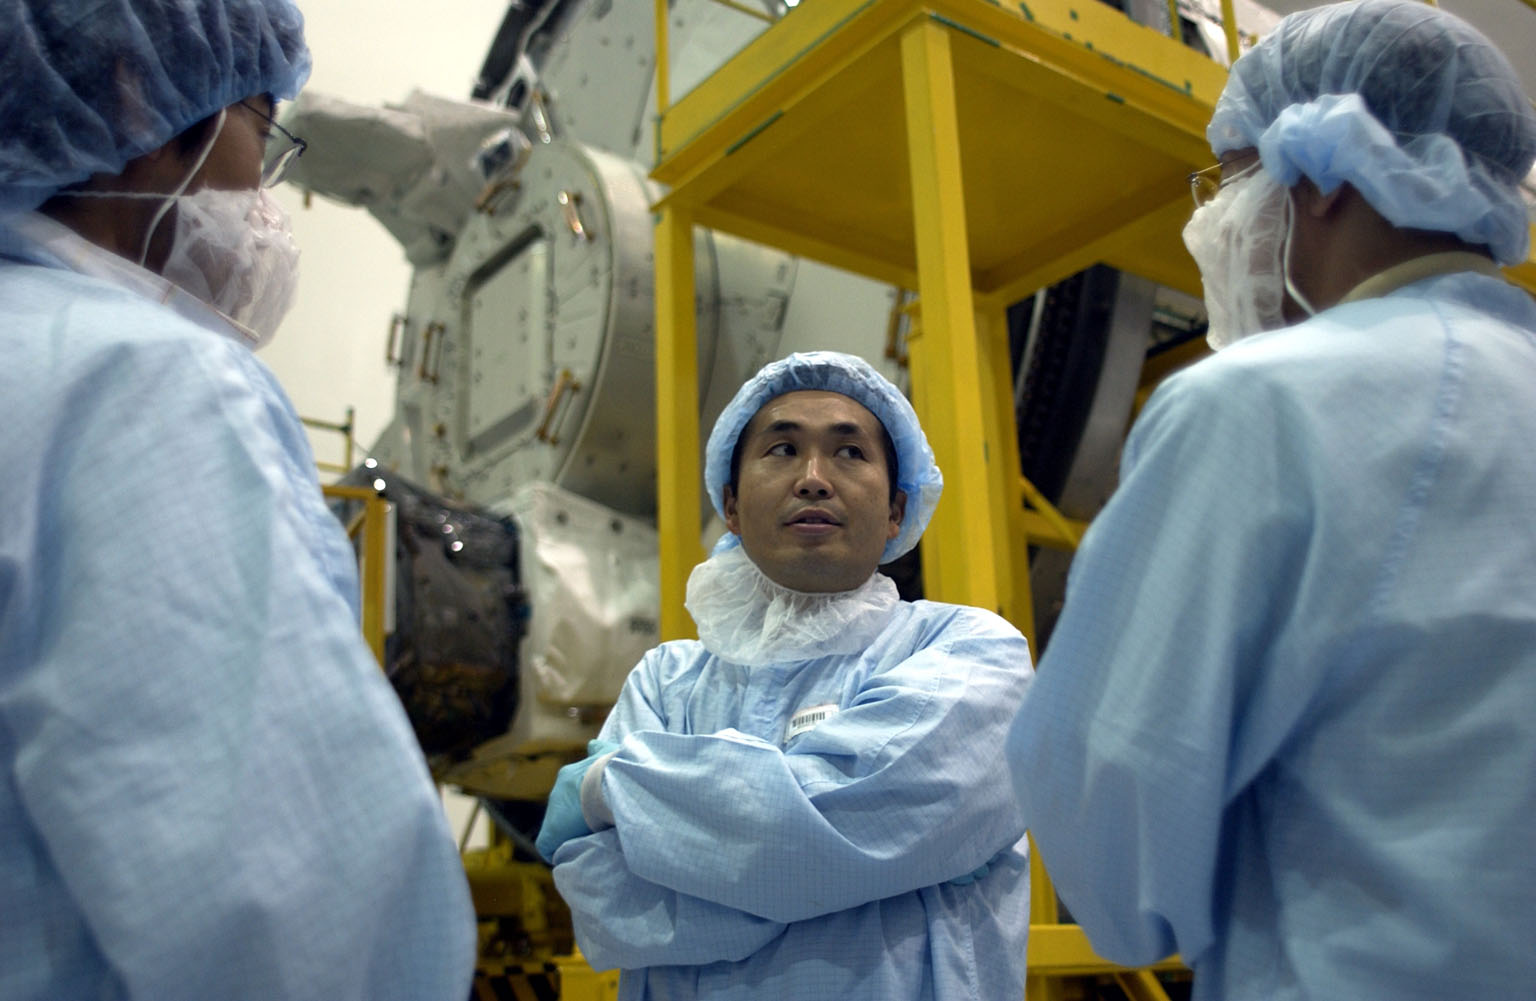 KENNEDY SPACE CENTER, FLA. - In the Space Station Processing Facility, Japanese astronaut Koichi Wakata, dressed in protective clothing, talks with workers before entering the Pressurized Module, or PM, behind him. Part of the Japanese Experiment Module (JEM), the PM provides a shirt-sleeve environment in which astronauts on the International Space Station can conduct microgravity experiments. There are a total of 23 racks, including 10 experiment racks, inside the PM providing a power supply, communications, air conditioning, hardware cooling, water control and experiment support functions.